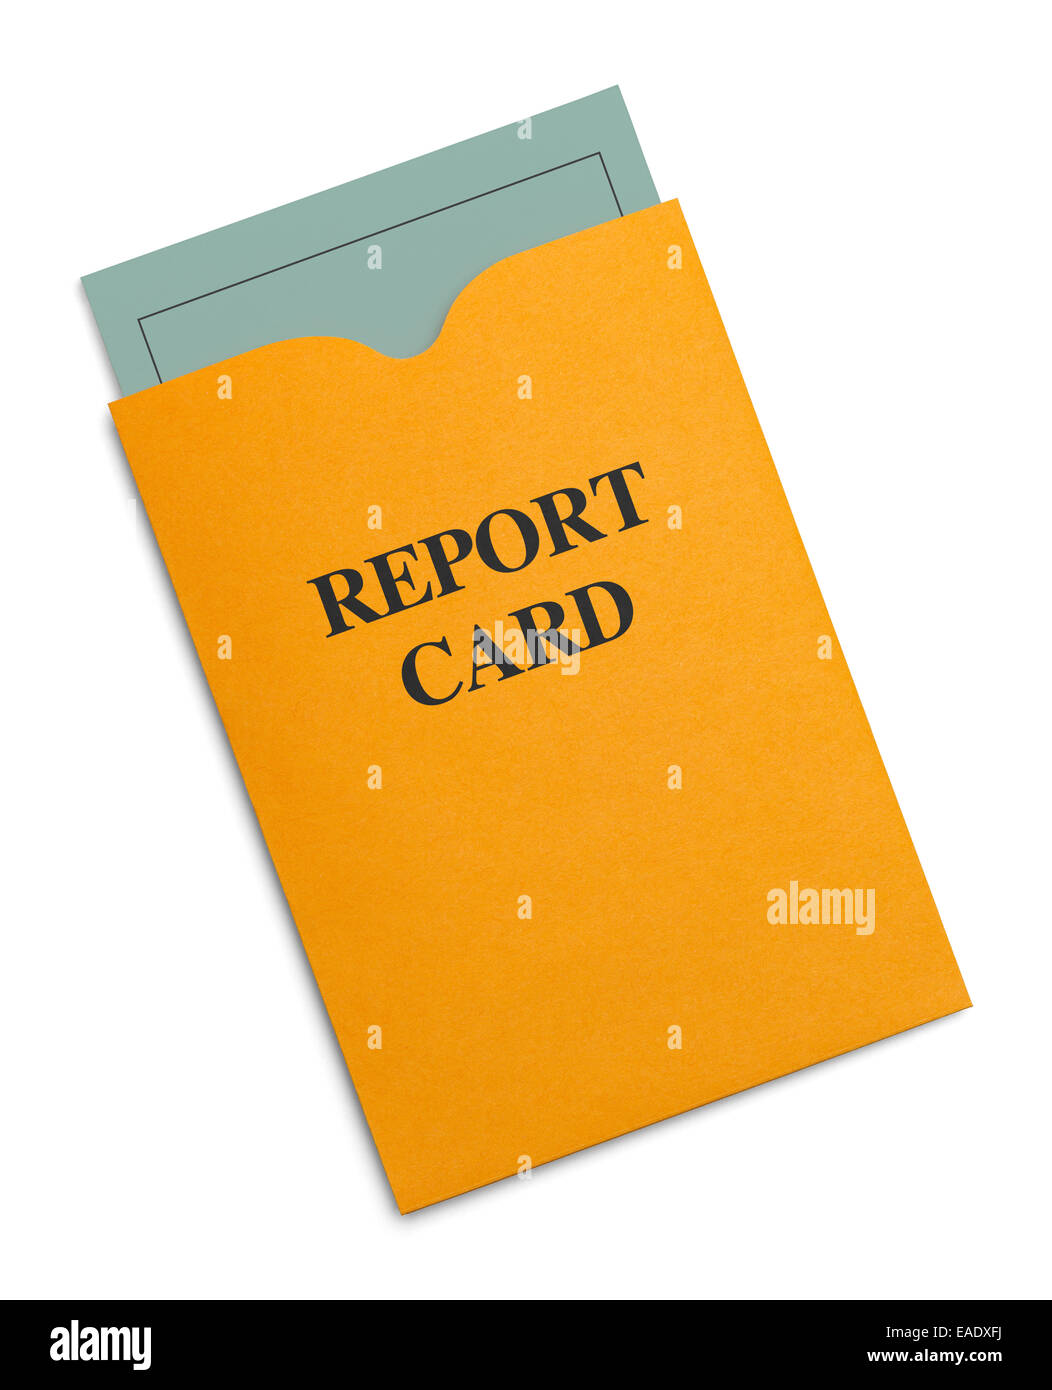 New Green Report Card Inside Yellow Envelope Isolated on White Background. - Stock Image